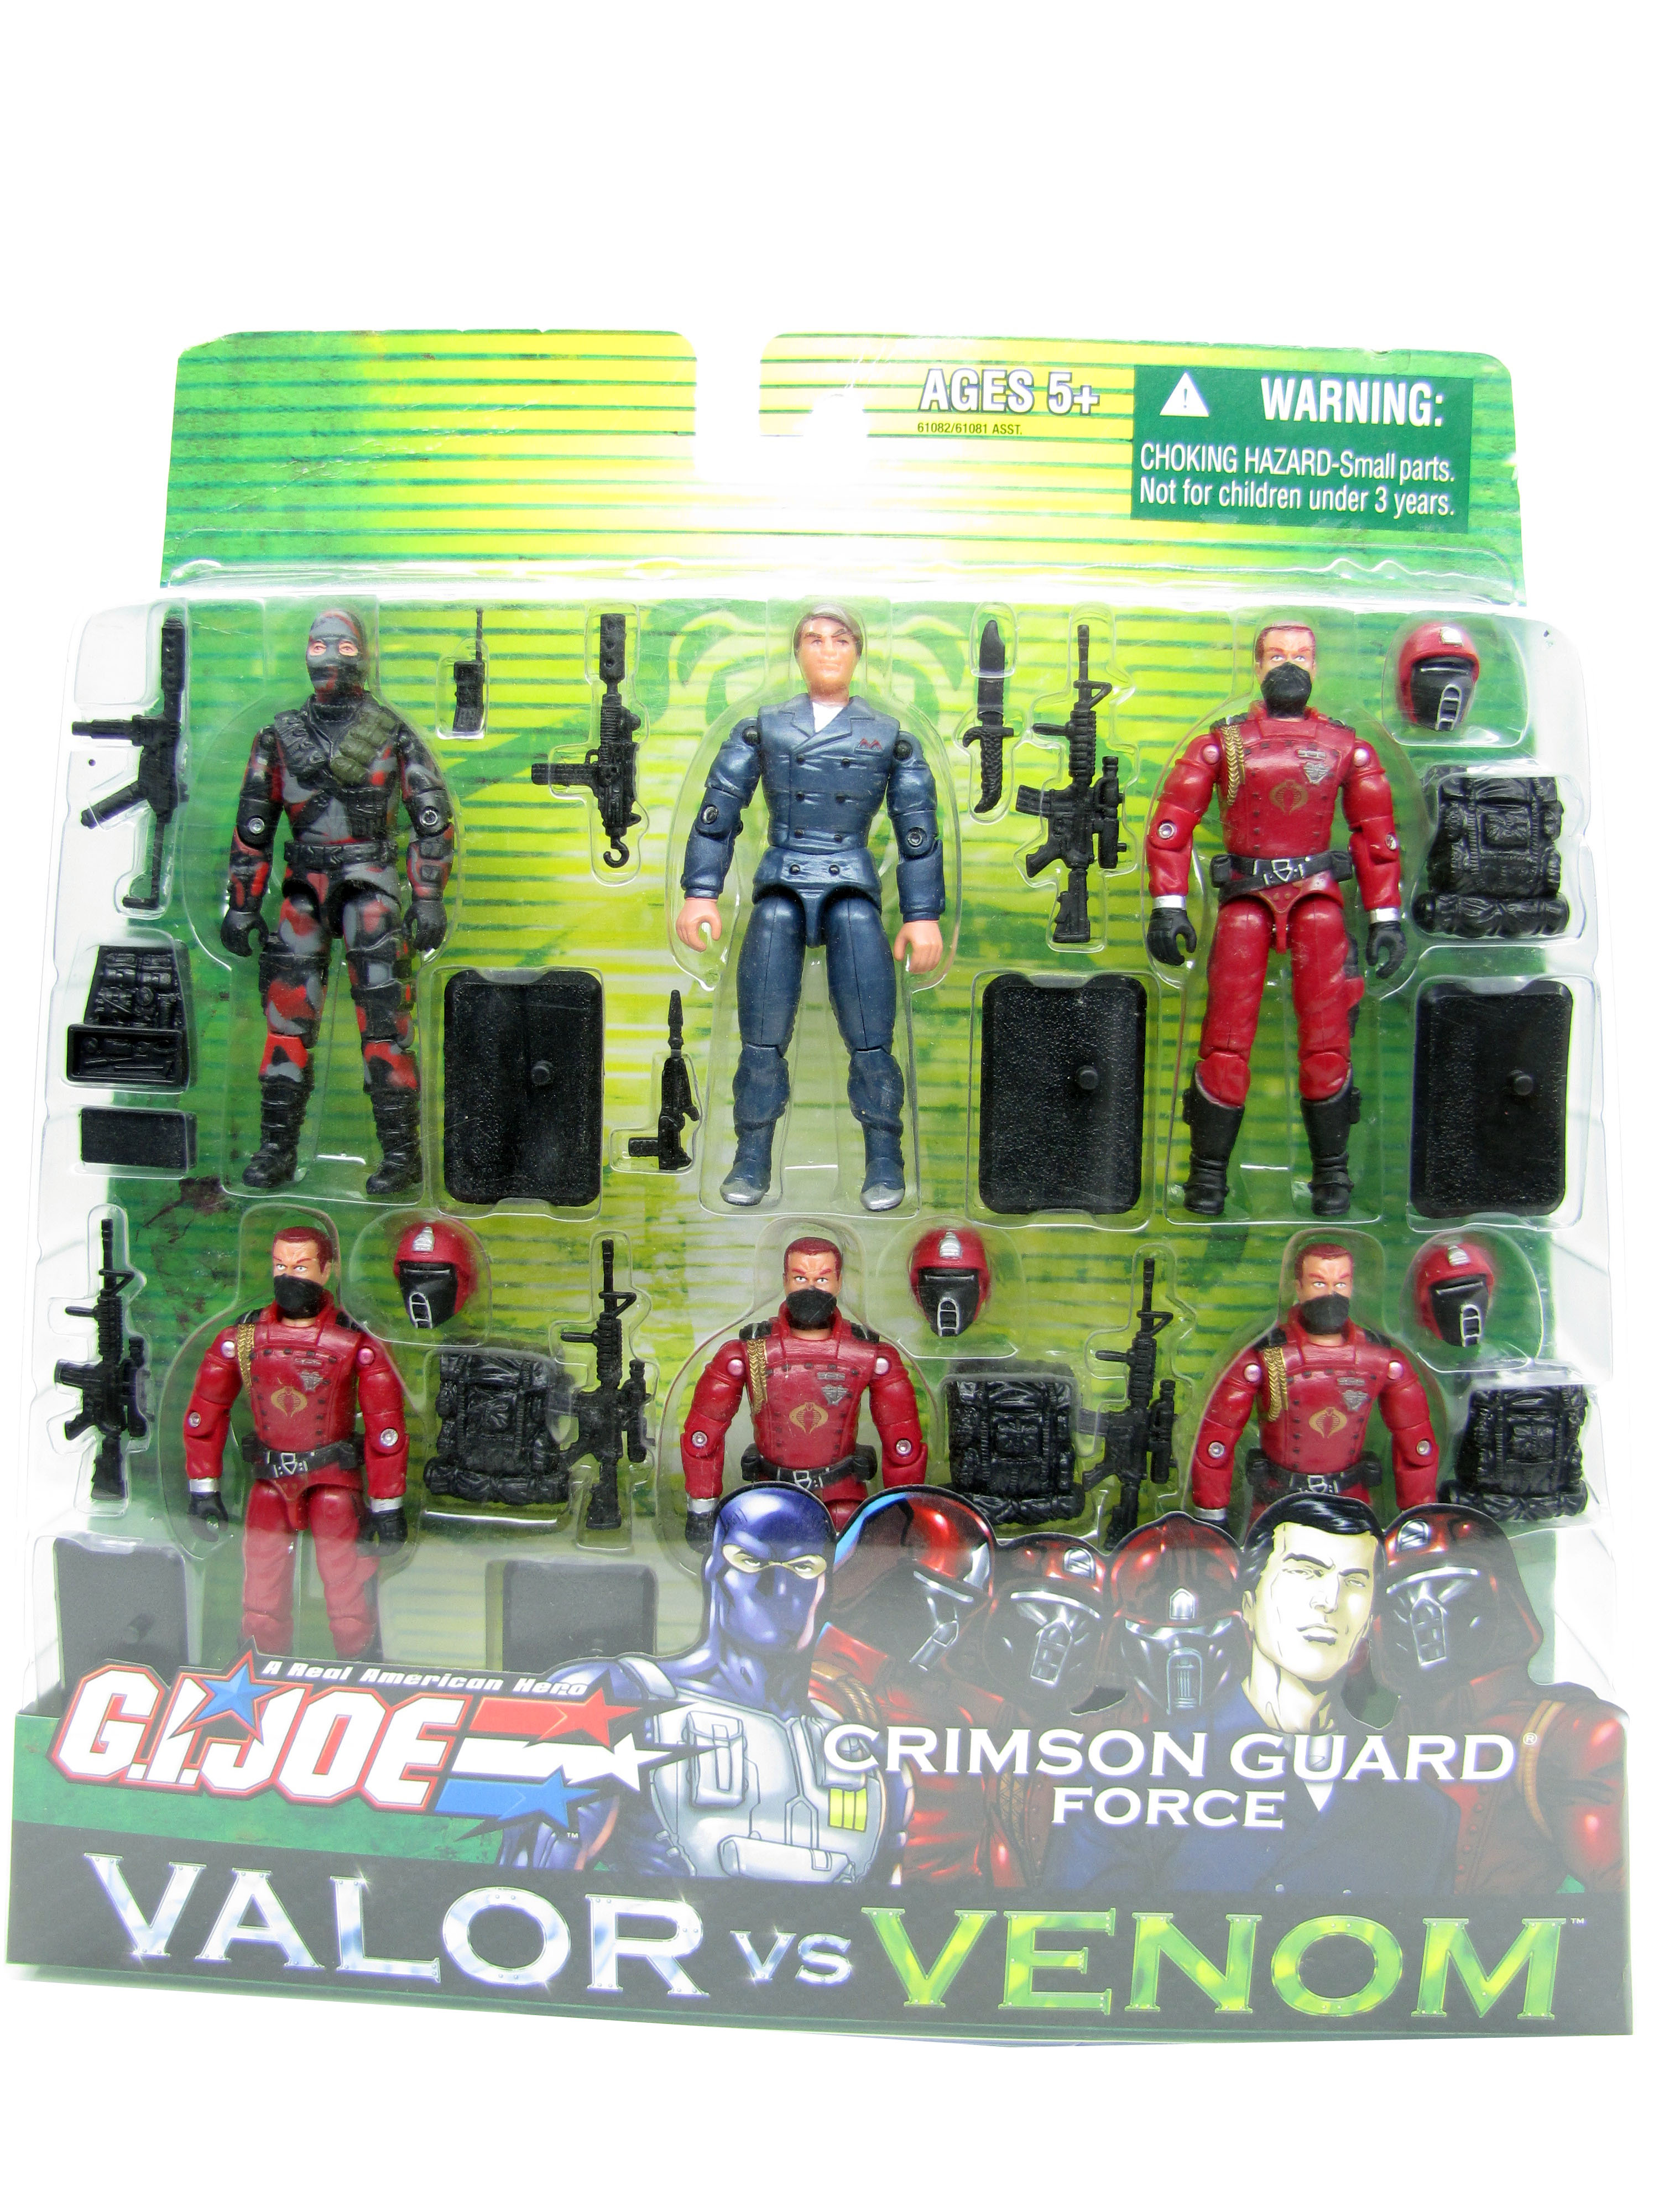 2005 GIJoe CRIMSON GUARD FORCE with TOMAX Sealed